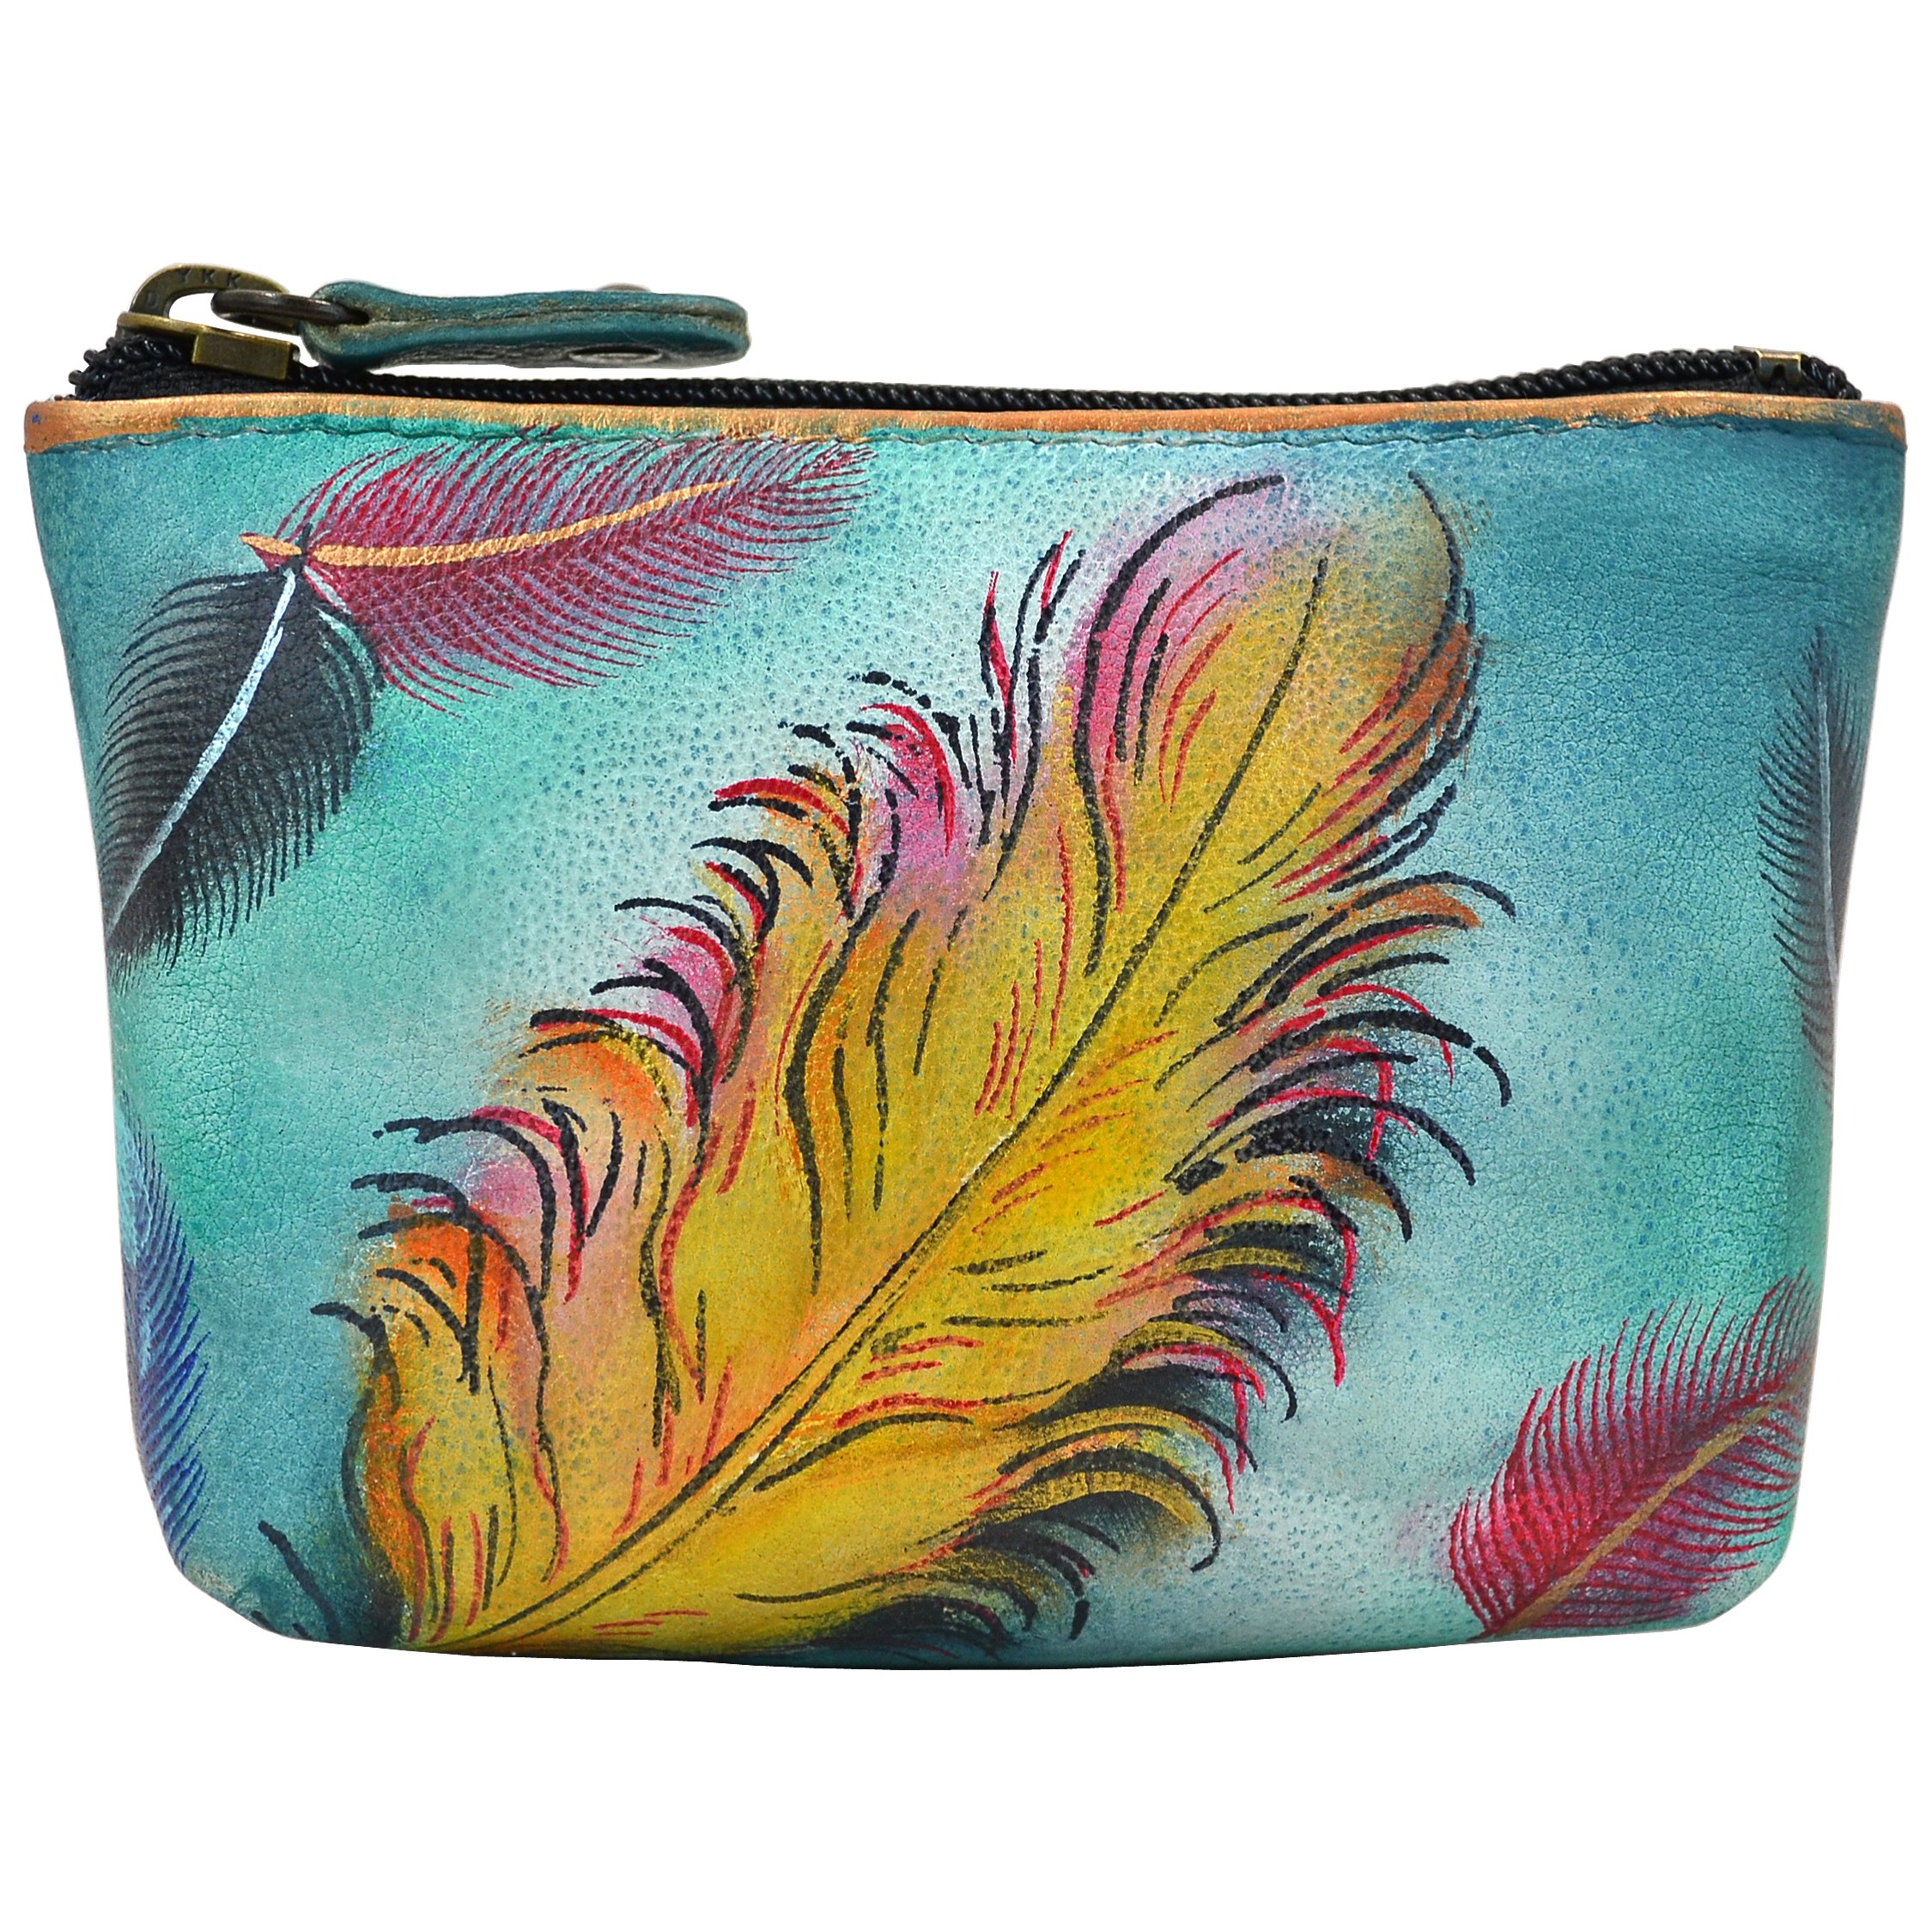 Anuschka Women's Hand Panted Coin Pouch Floating Feathers Purse, One Size